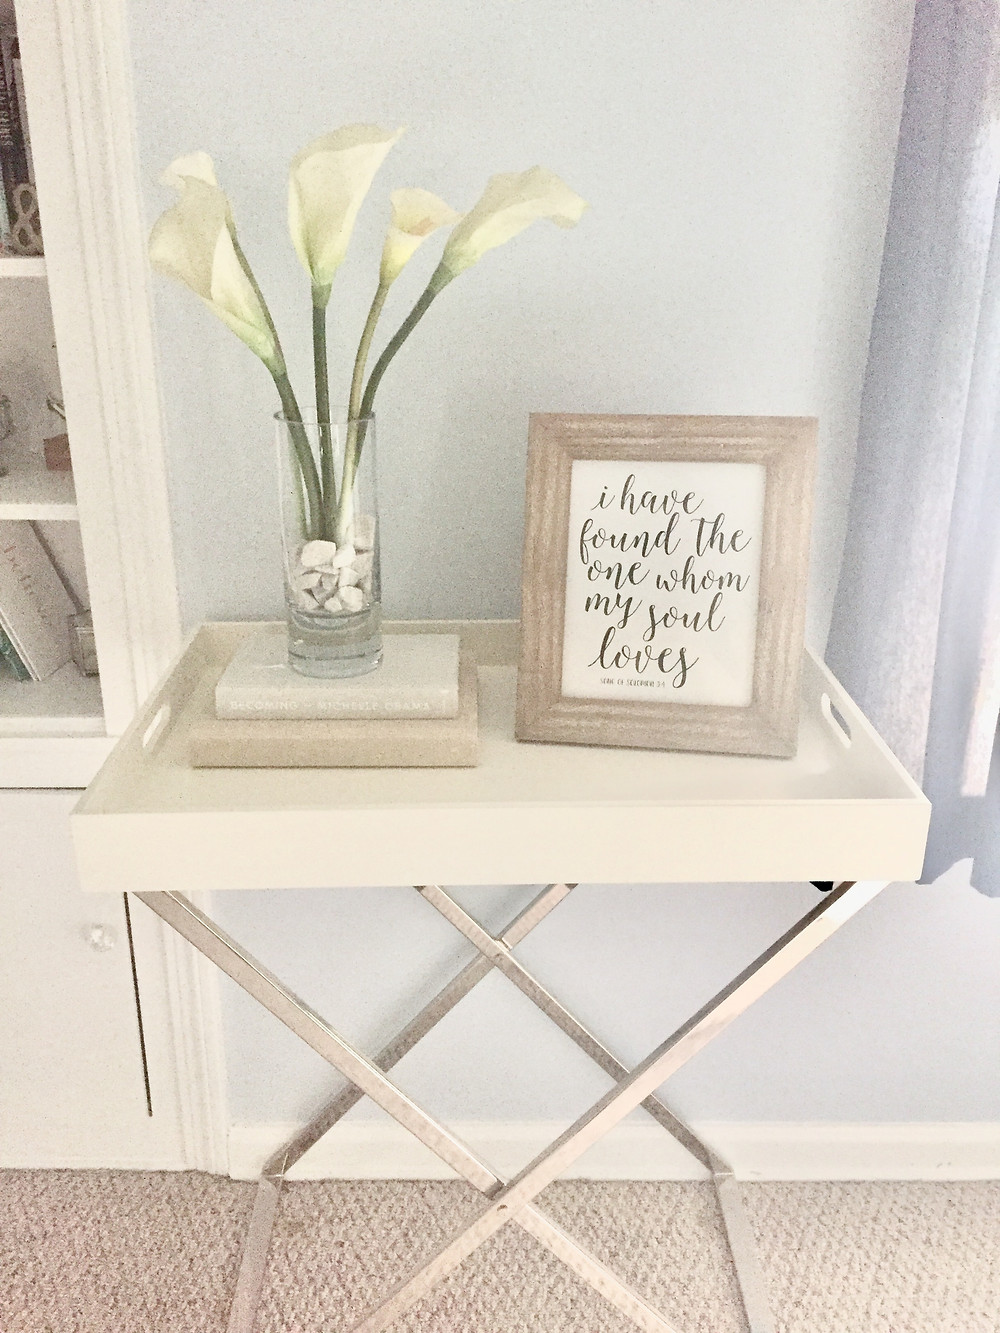 Tray and stand with vase of flowers books framed photo